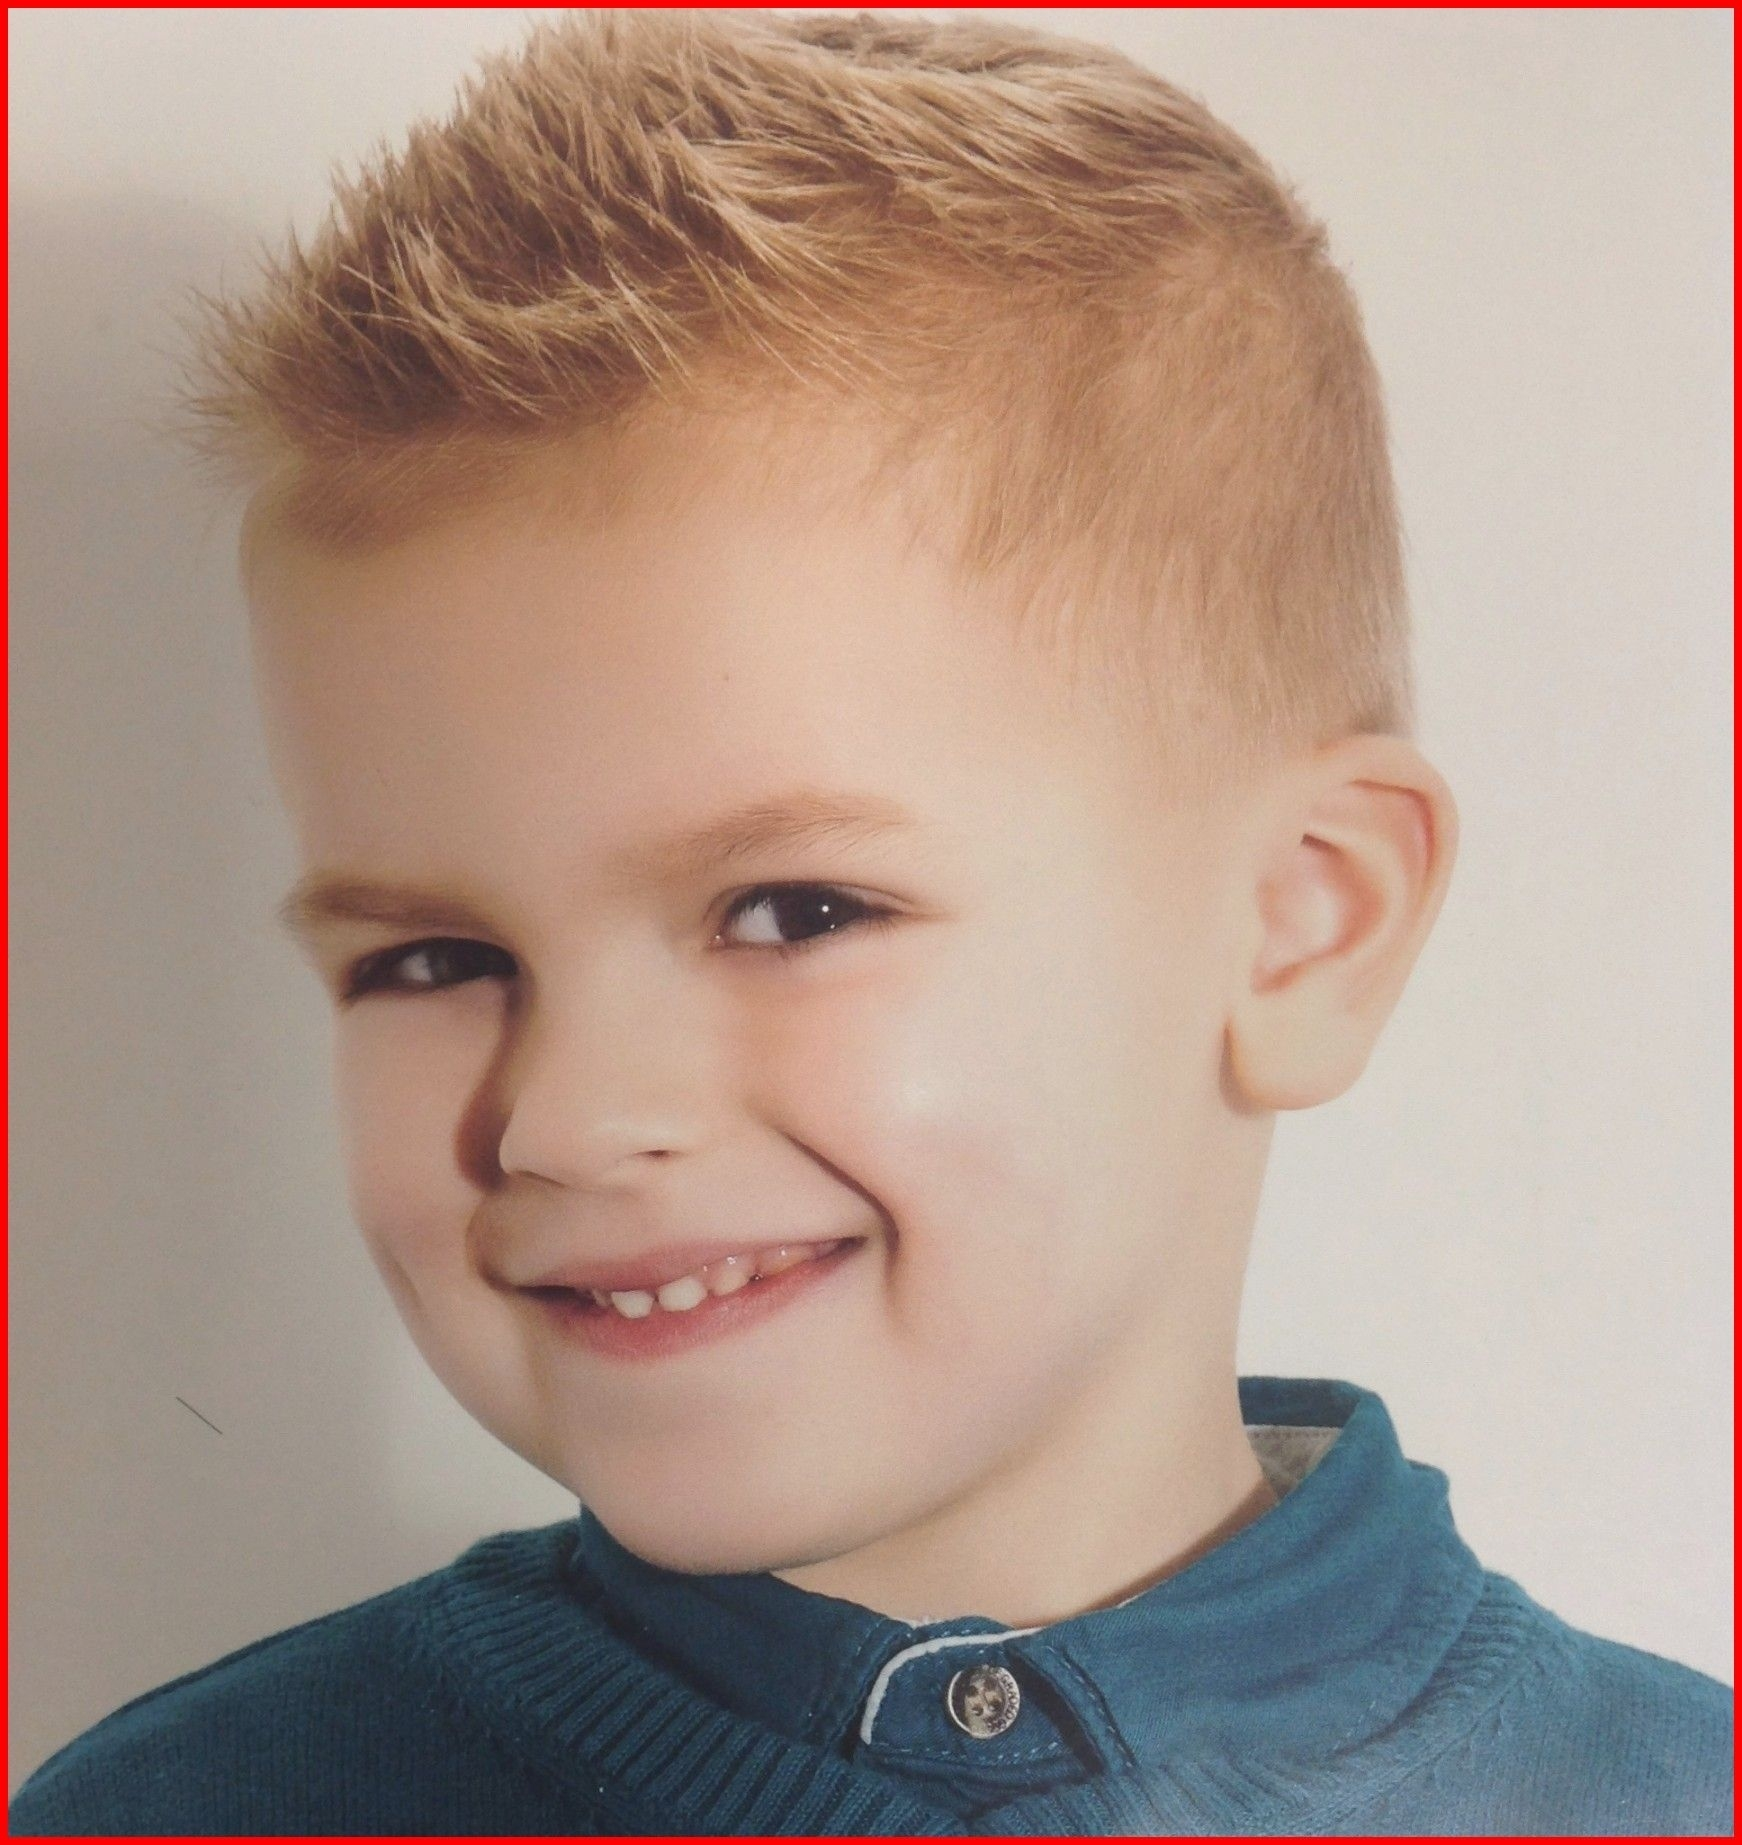 9 Year Old Boy Haircuts 2016 - The Best    Boy Haircut In for 9 Year Old Boy Hair Cut